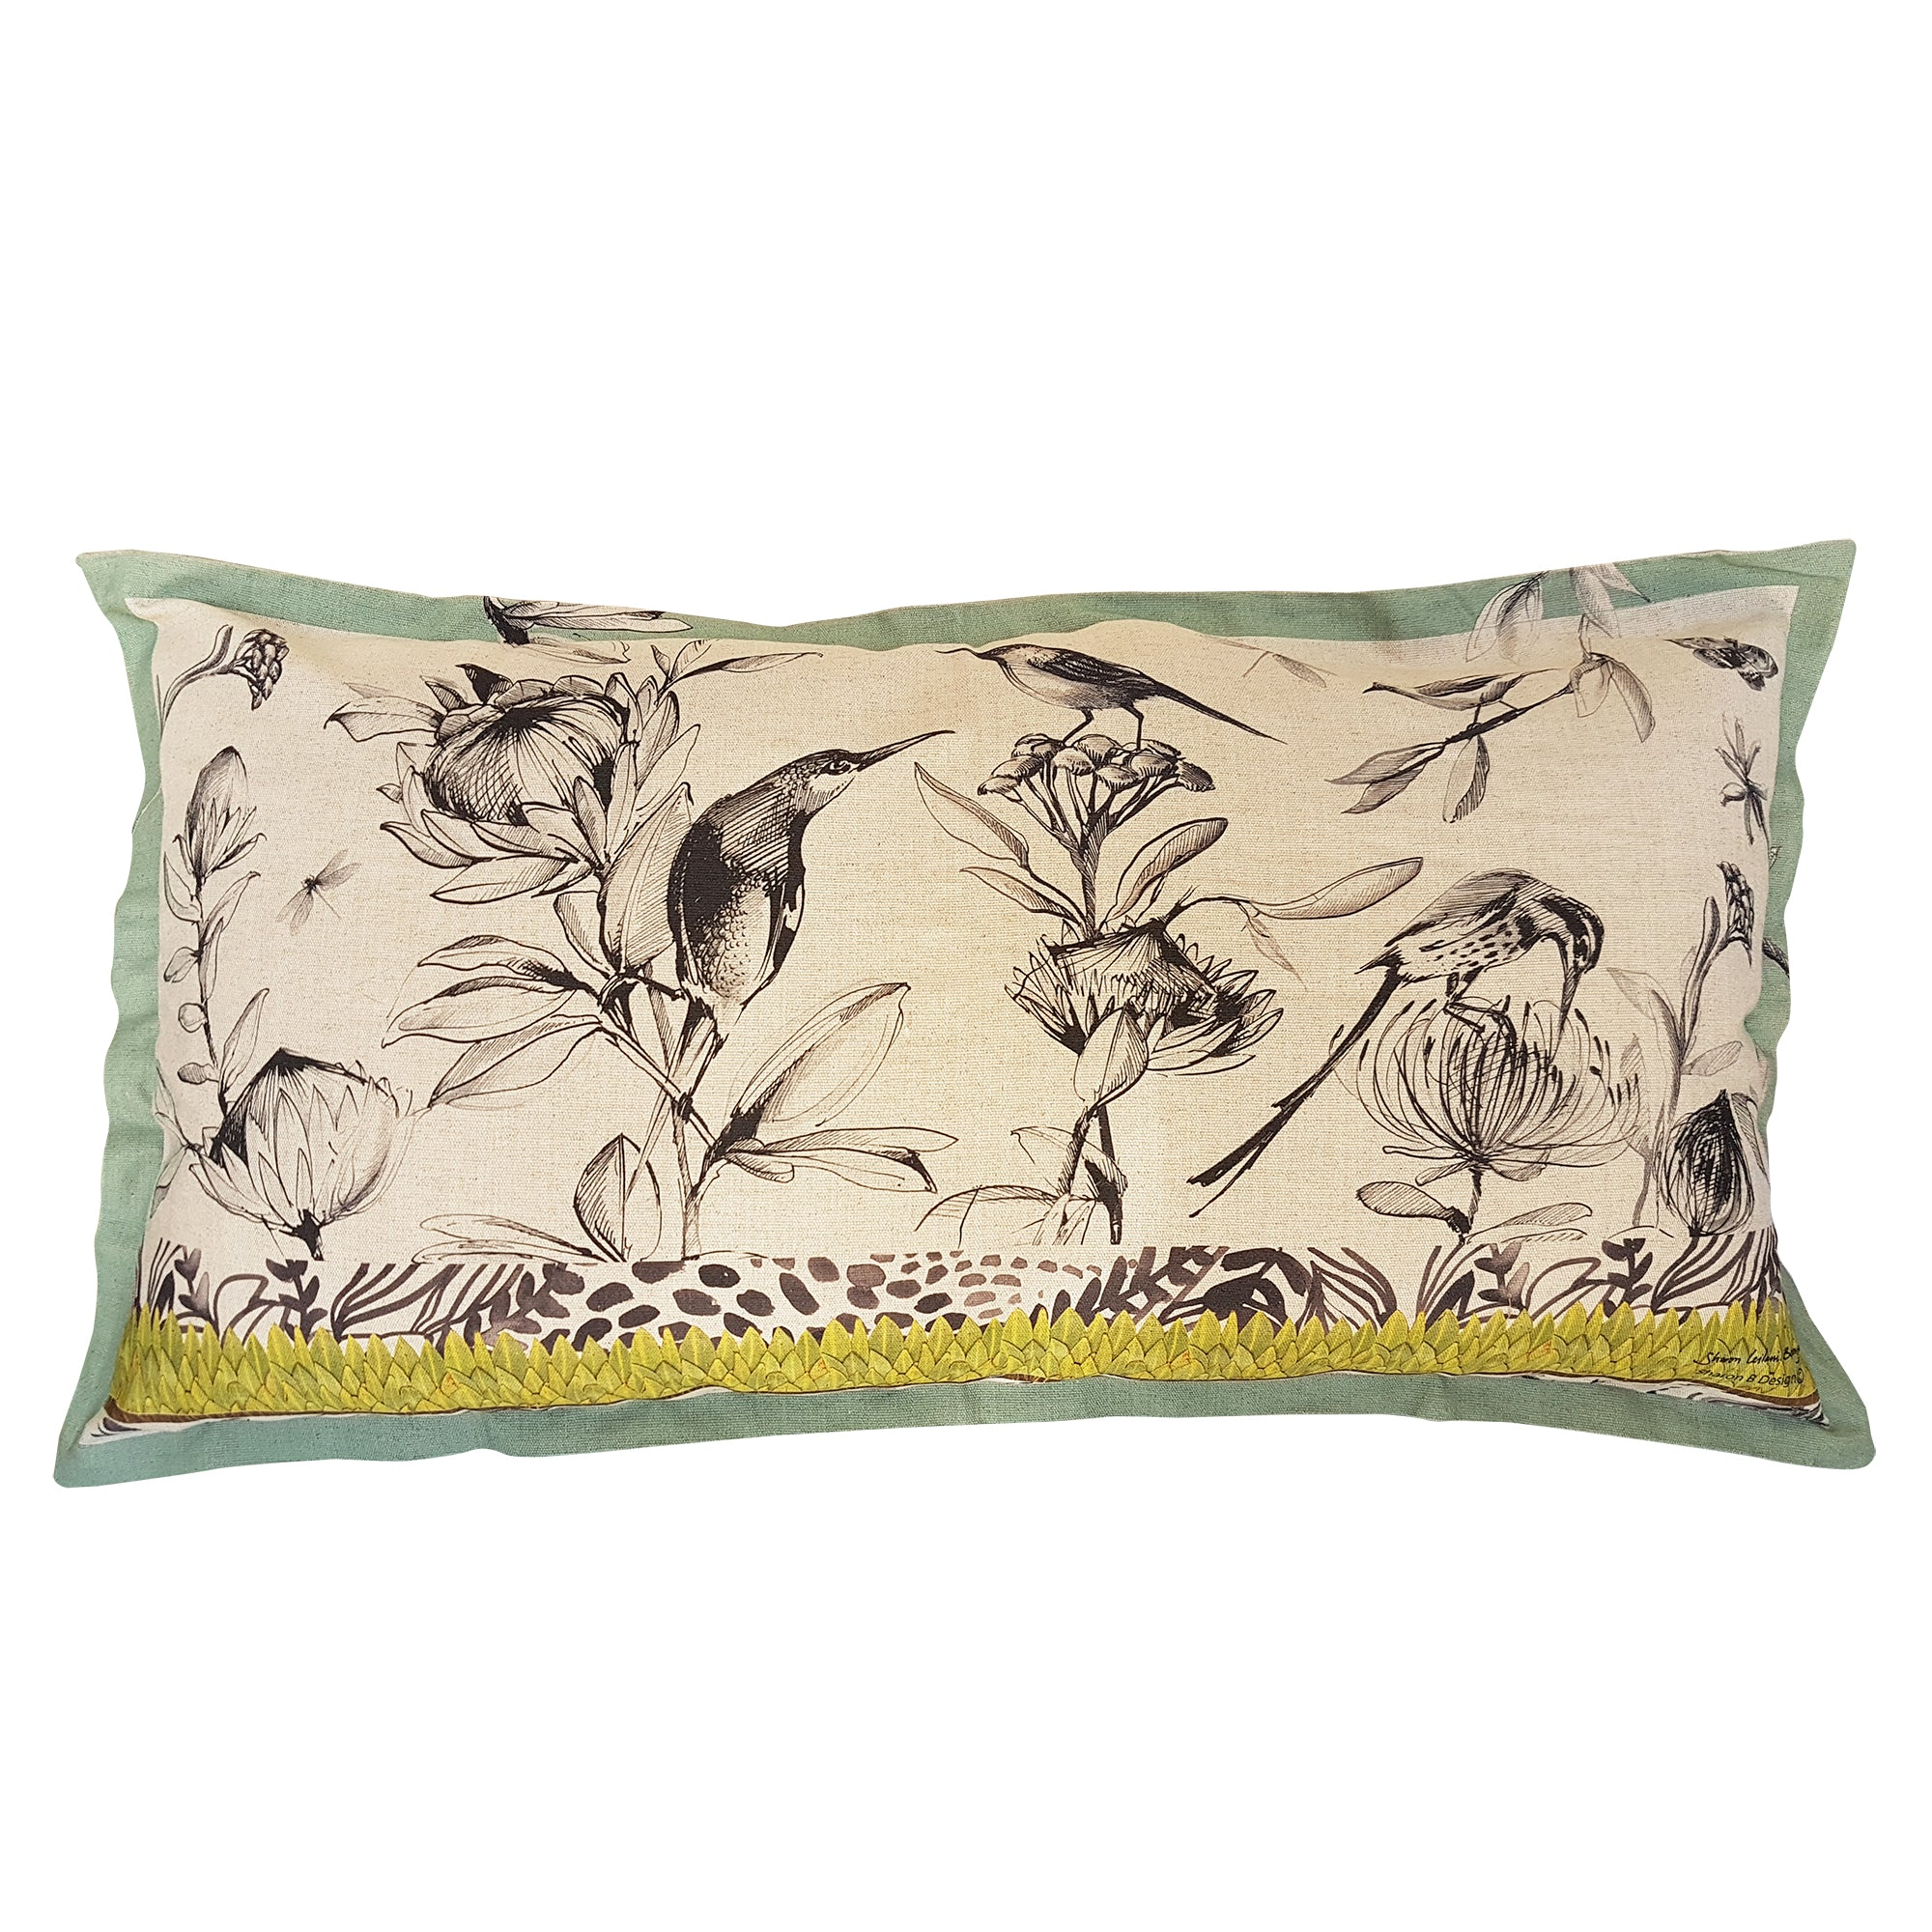 Greyscale Fynbos Cushion Cover (Large Linen-cotton blend)